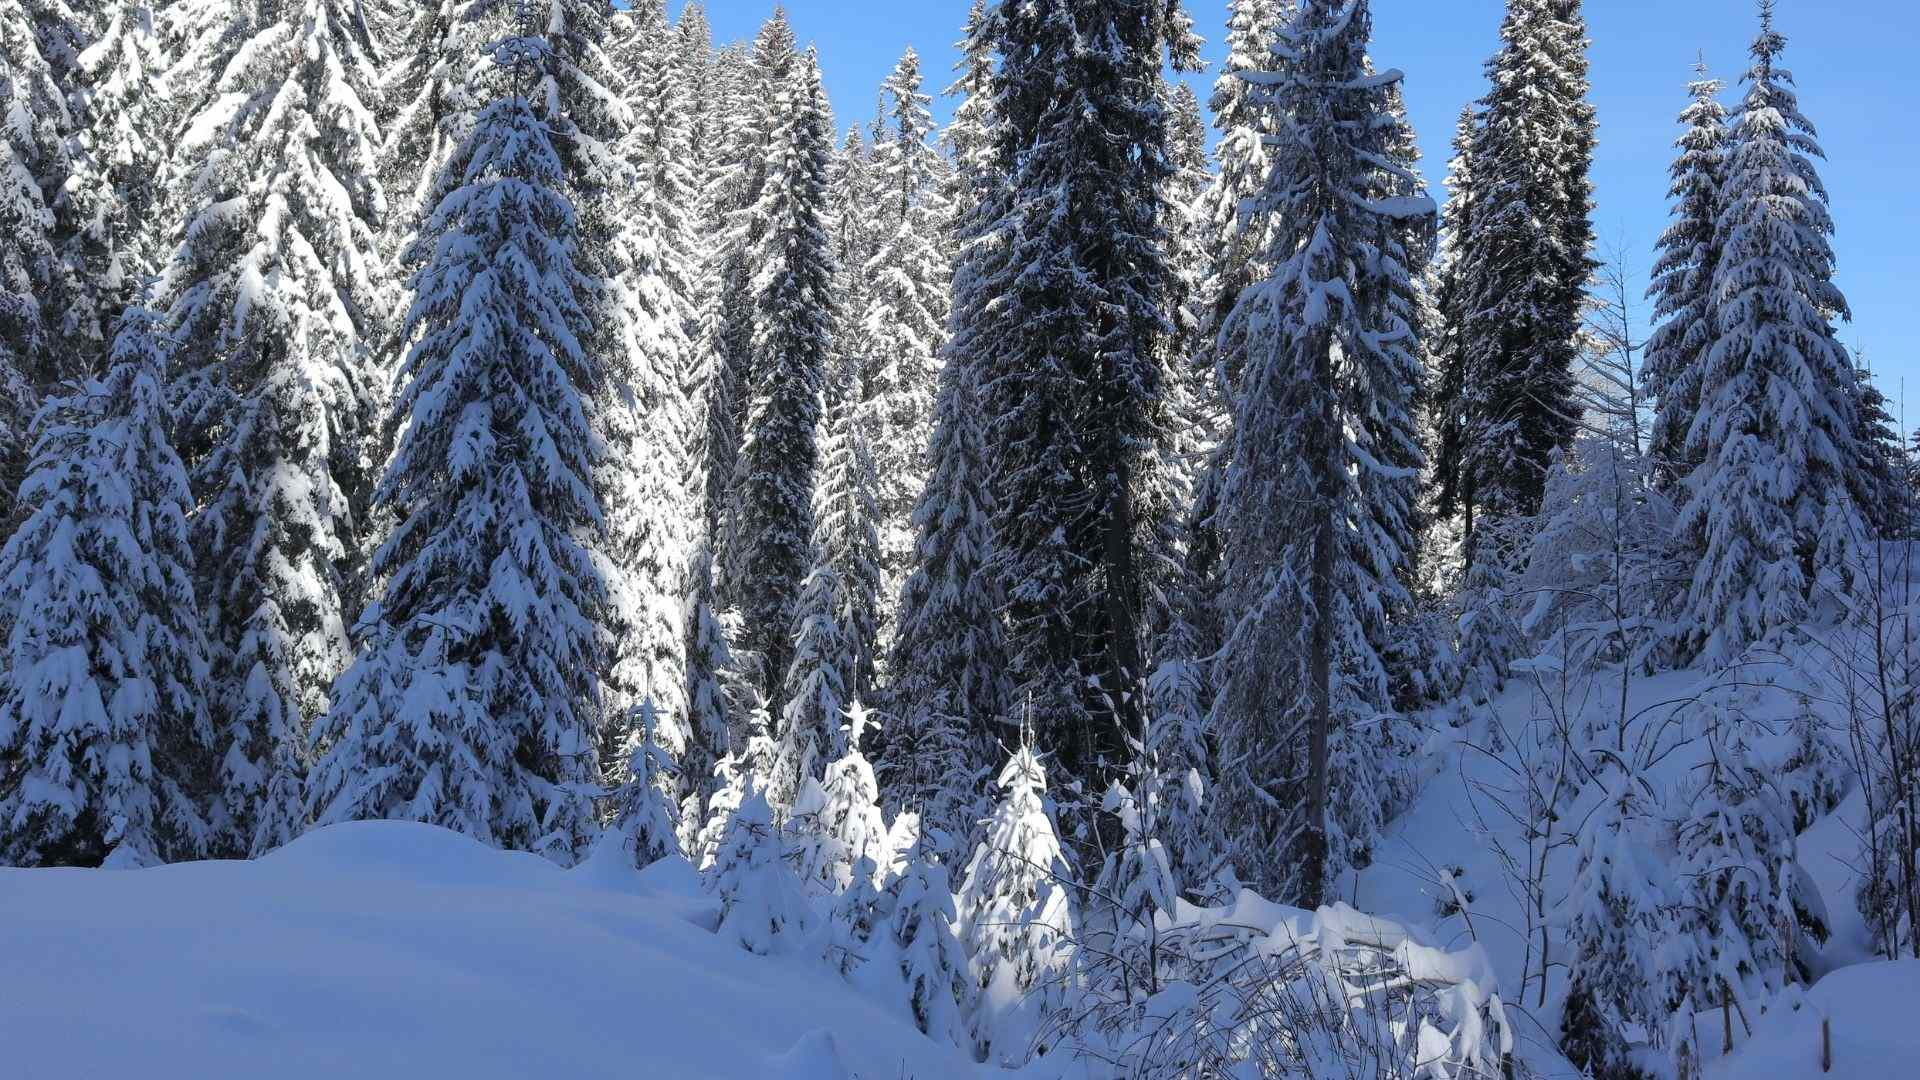 Hiking in snow- snowy forest